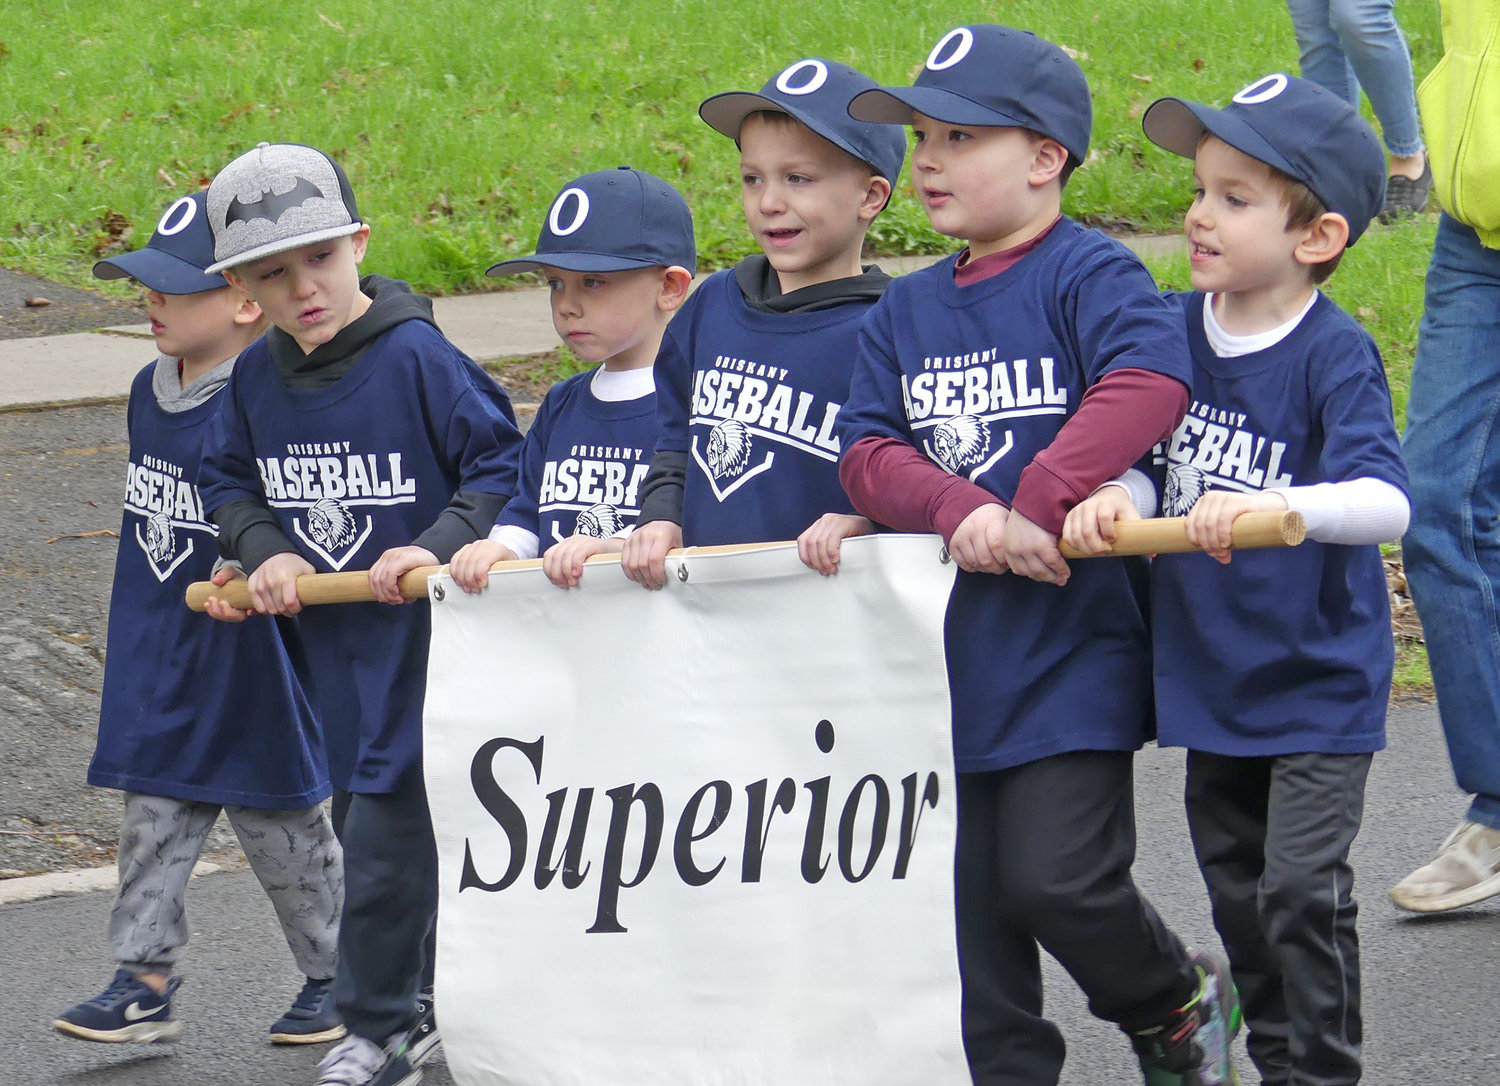 Oriskany little league t-ball team from Superior march during opening ceremony parade on Saturday.